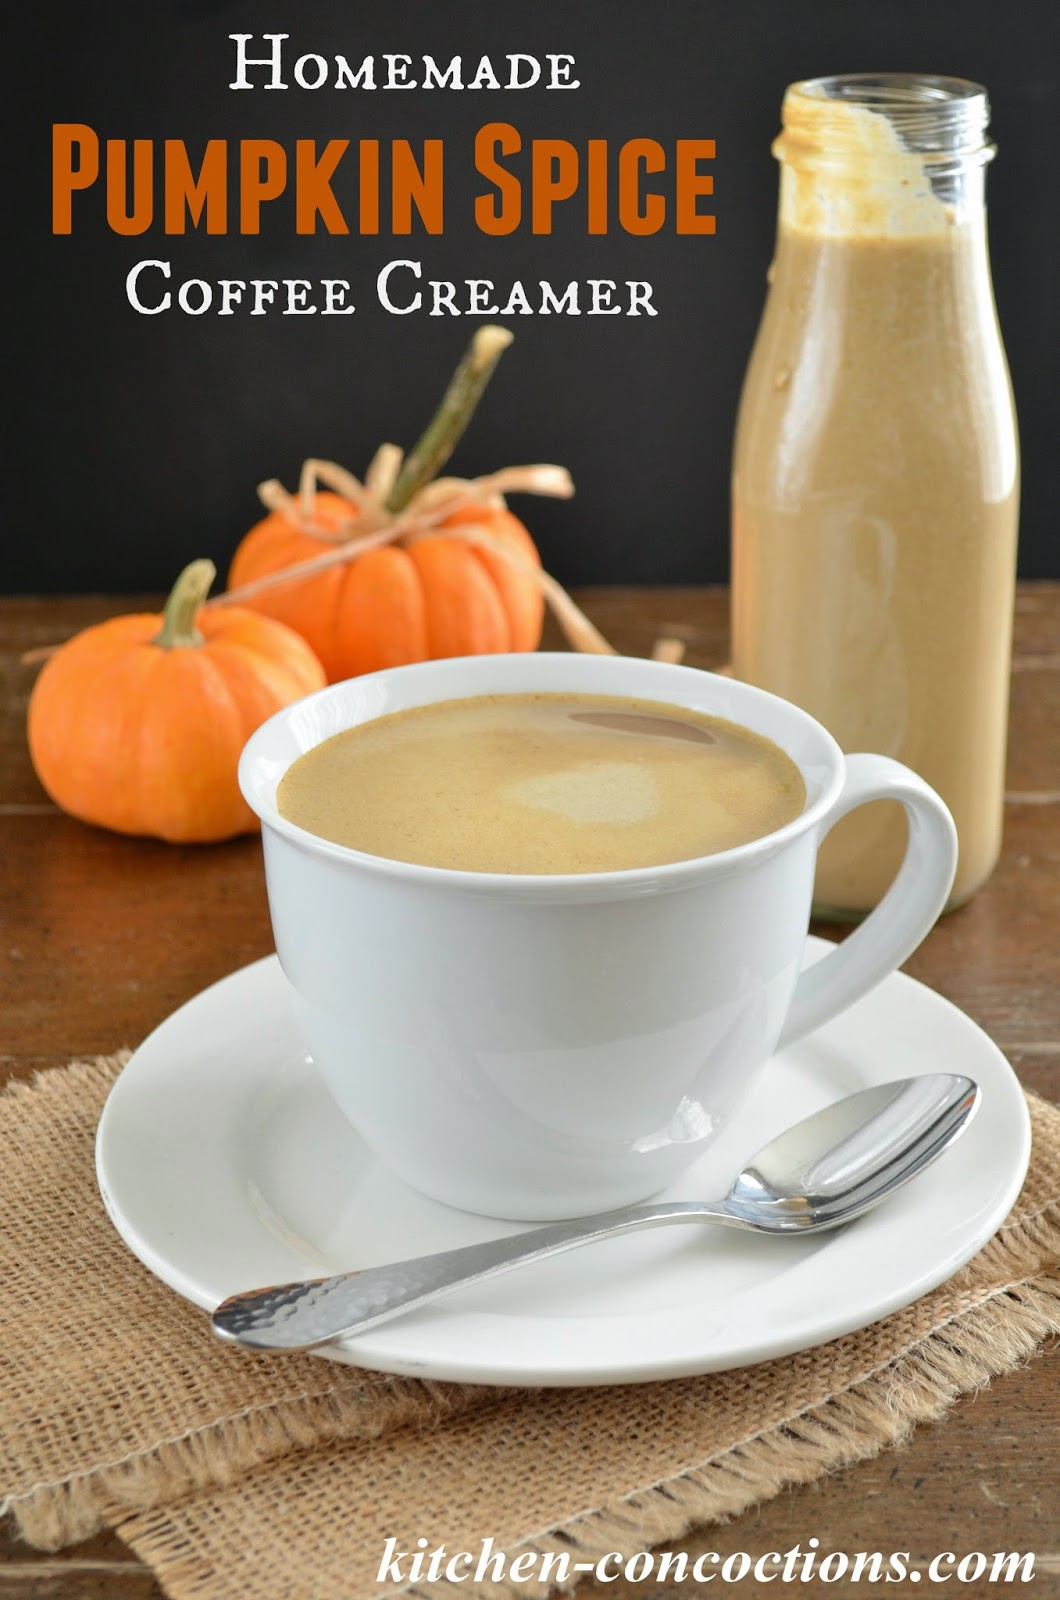 """This pumpkin spice version is the perfect way to enjoy some """"me time"""" and will certainly liven up a cup of coffee on a chilly fall day!"""